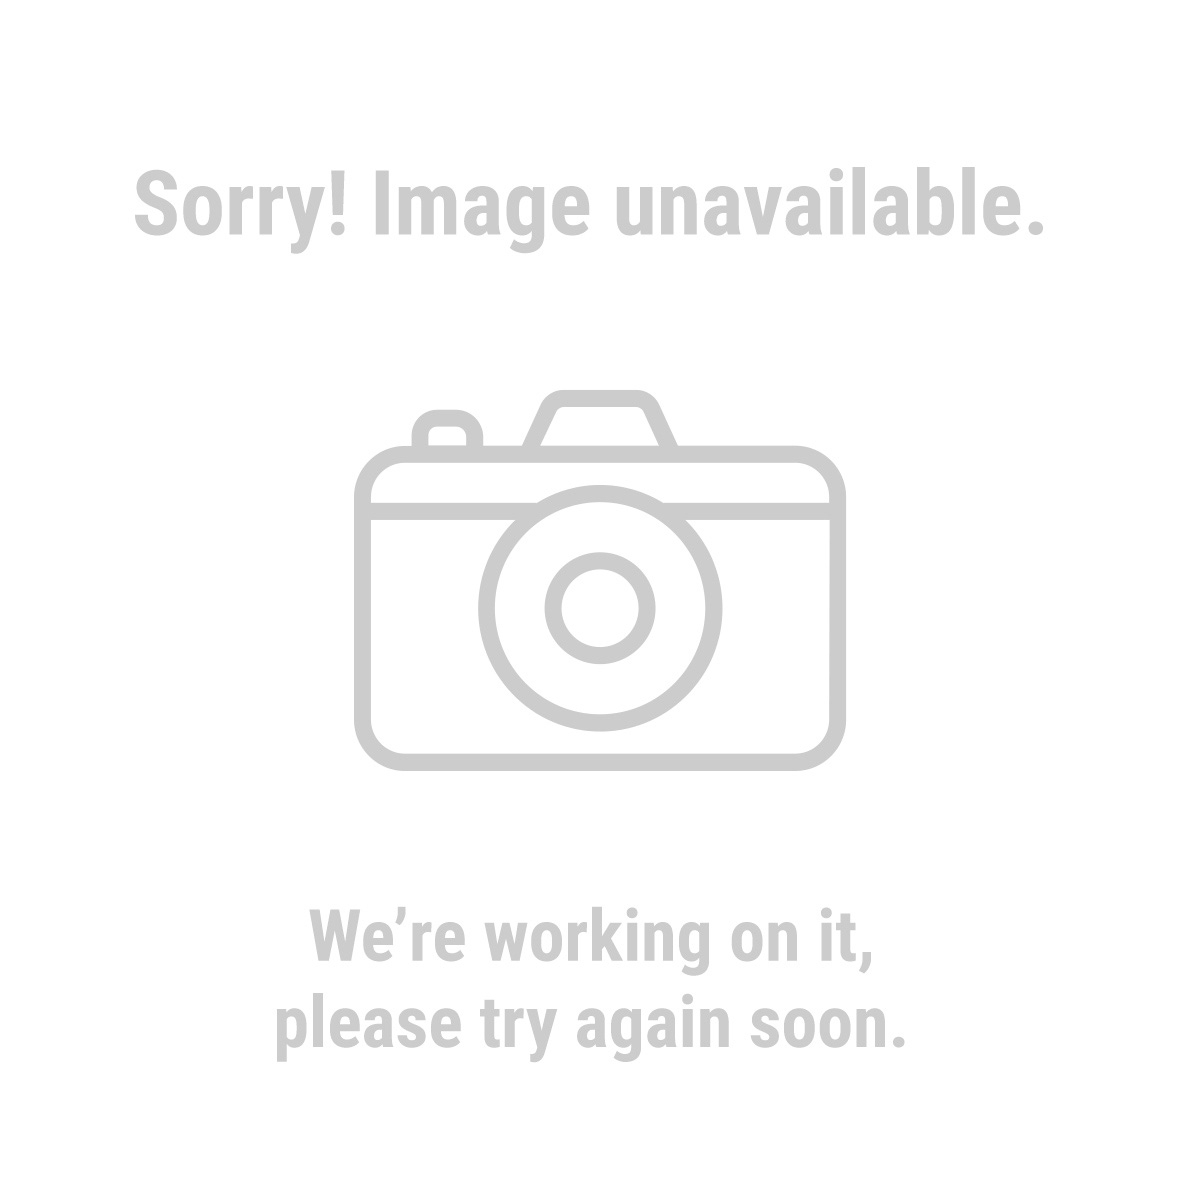 StikTek™ 63244 60 yd. x 0.94 in. Painter's Tape